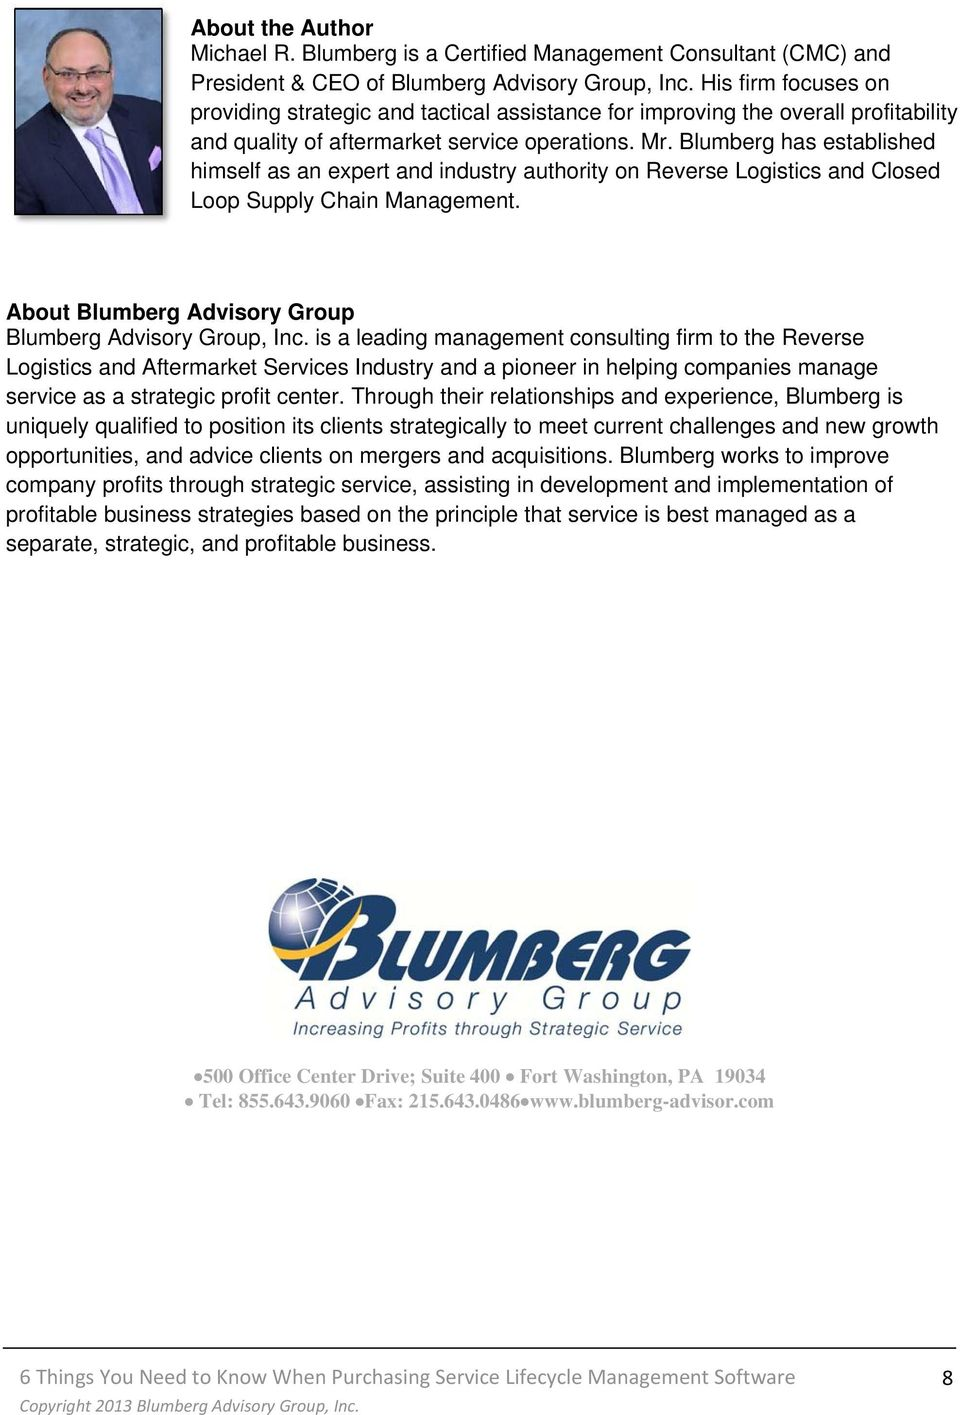 Blumberg has established himself as an expert and industry authority on Reverse Logistics and Closed Loop Supply Chain Management. About Blumberg Advisory Group Blumberg Advisory Group, Inc.